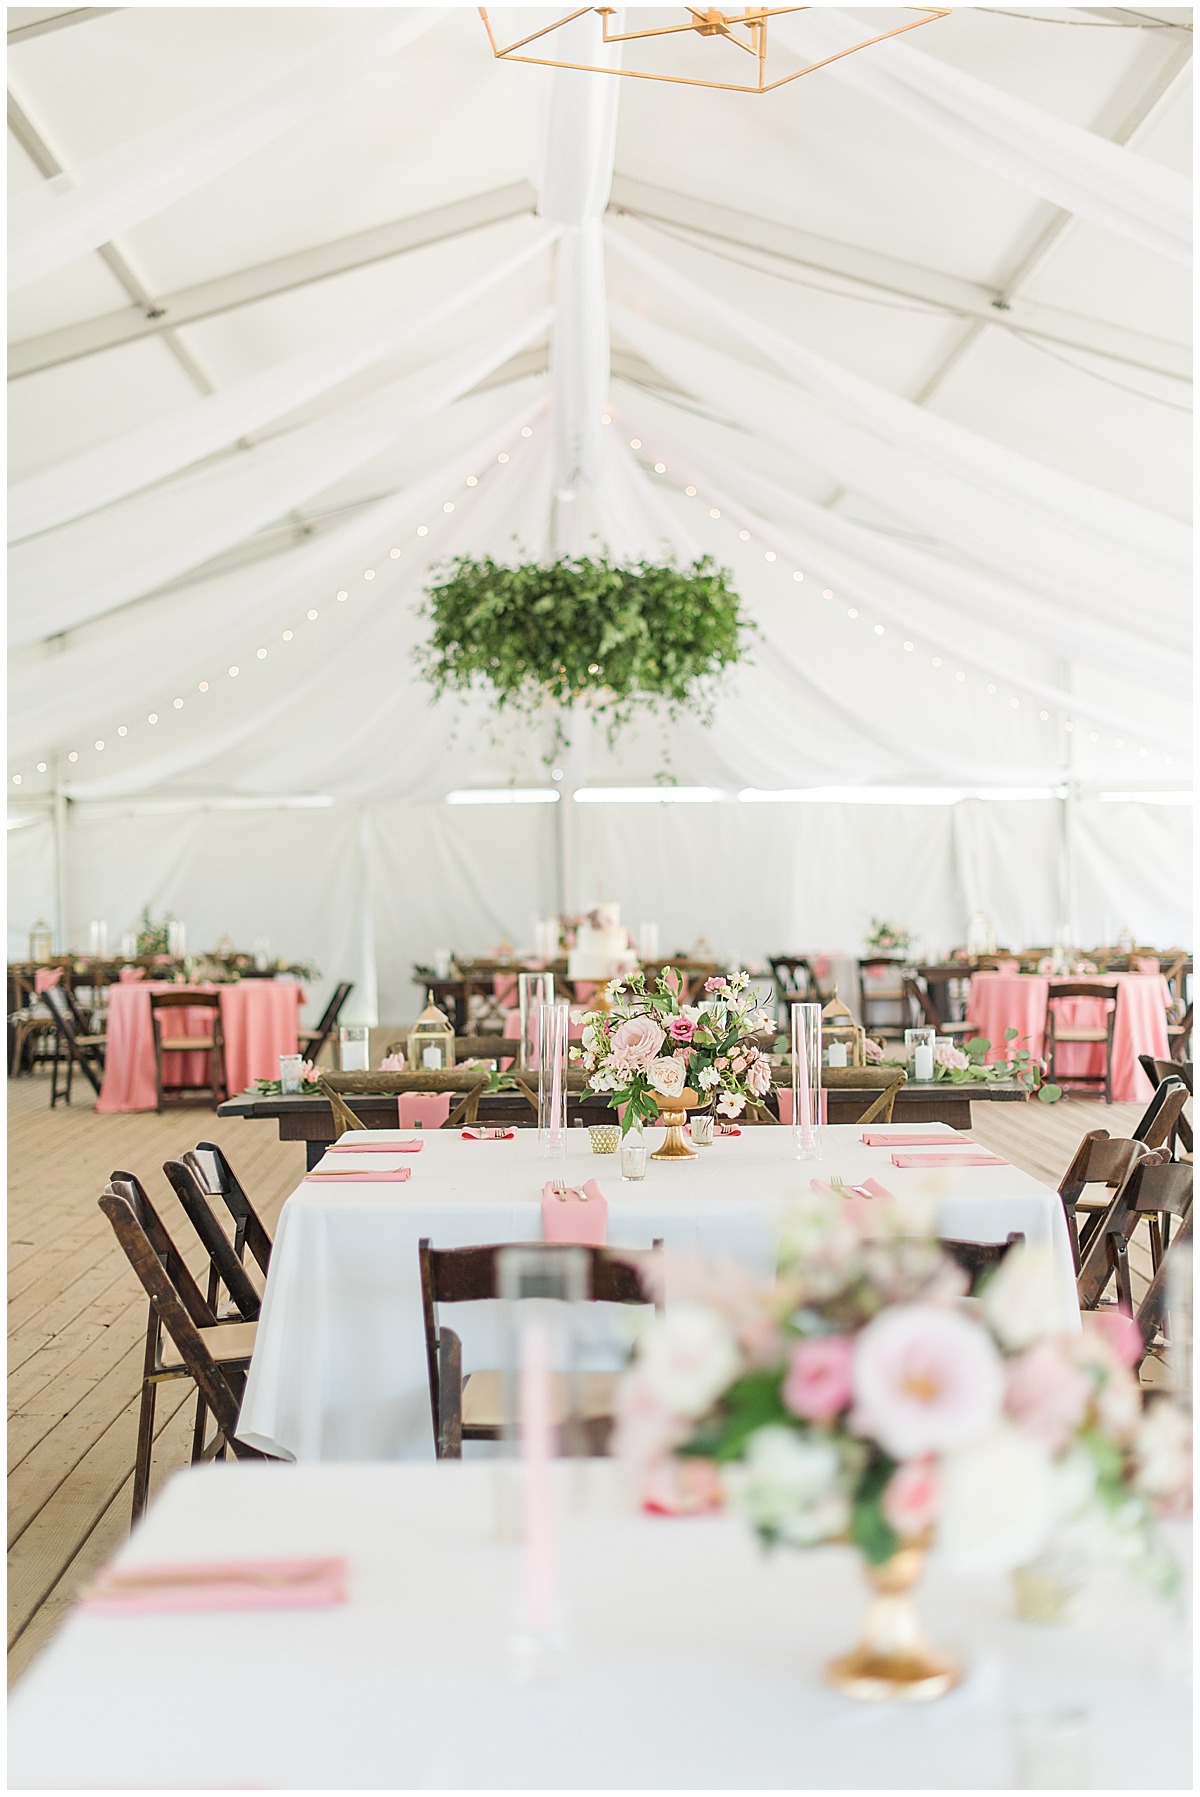 Runnymeade Plantation Charleston wedding reception under tent with hanging green floral display